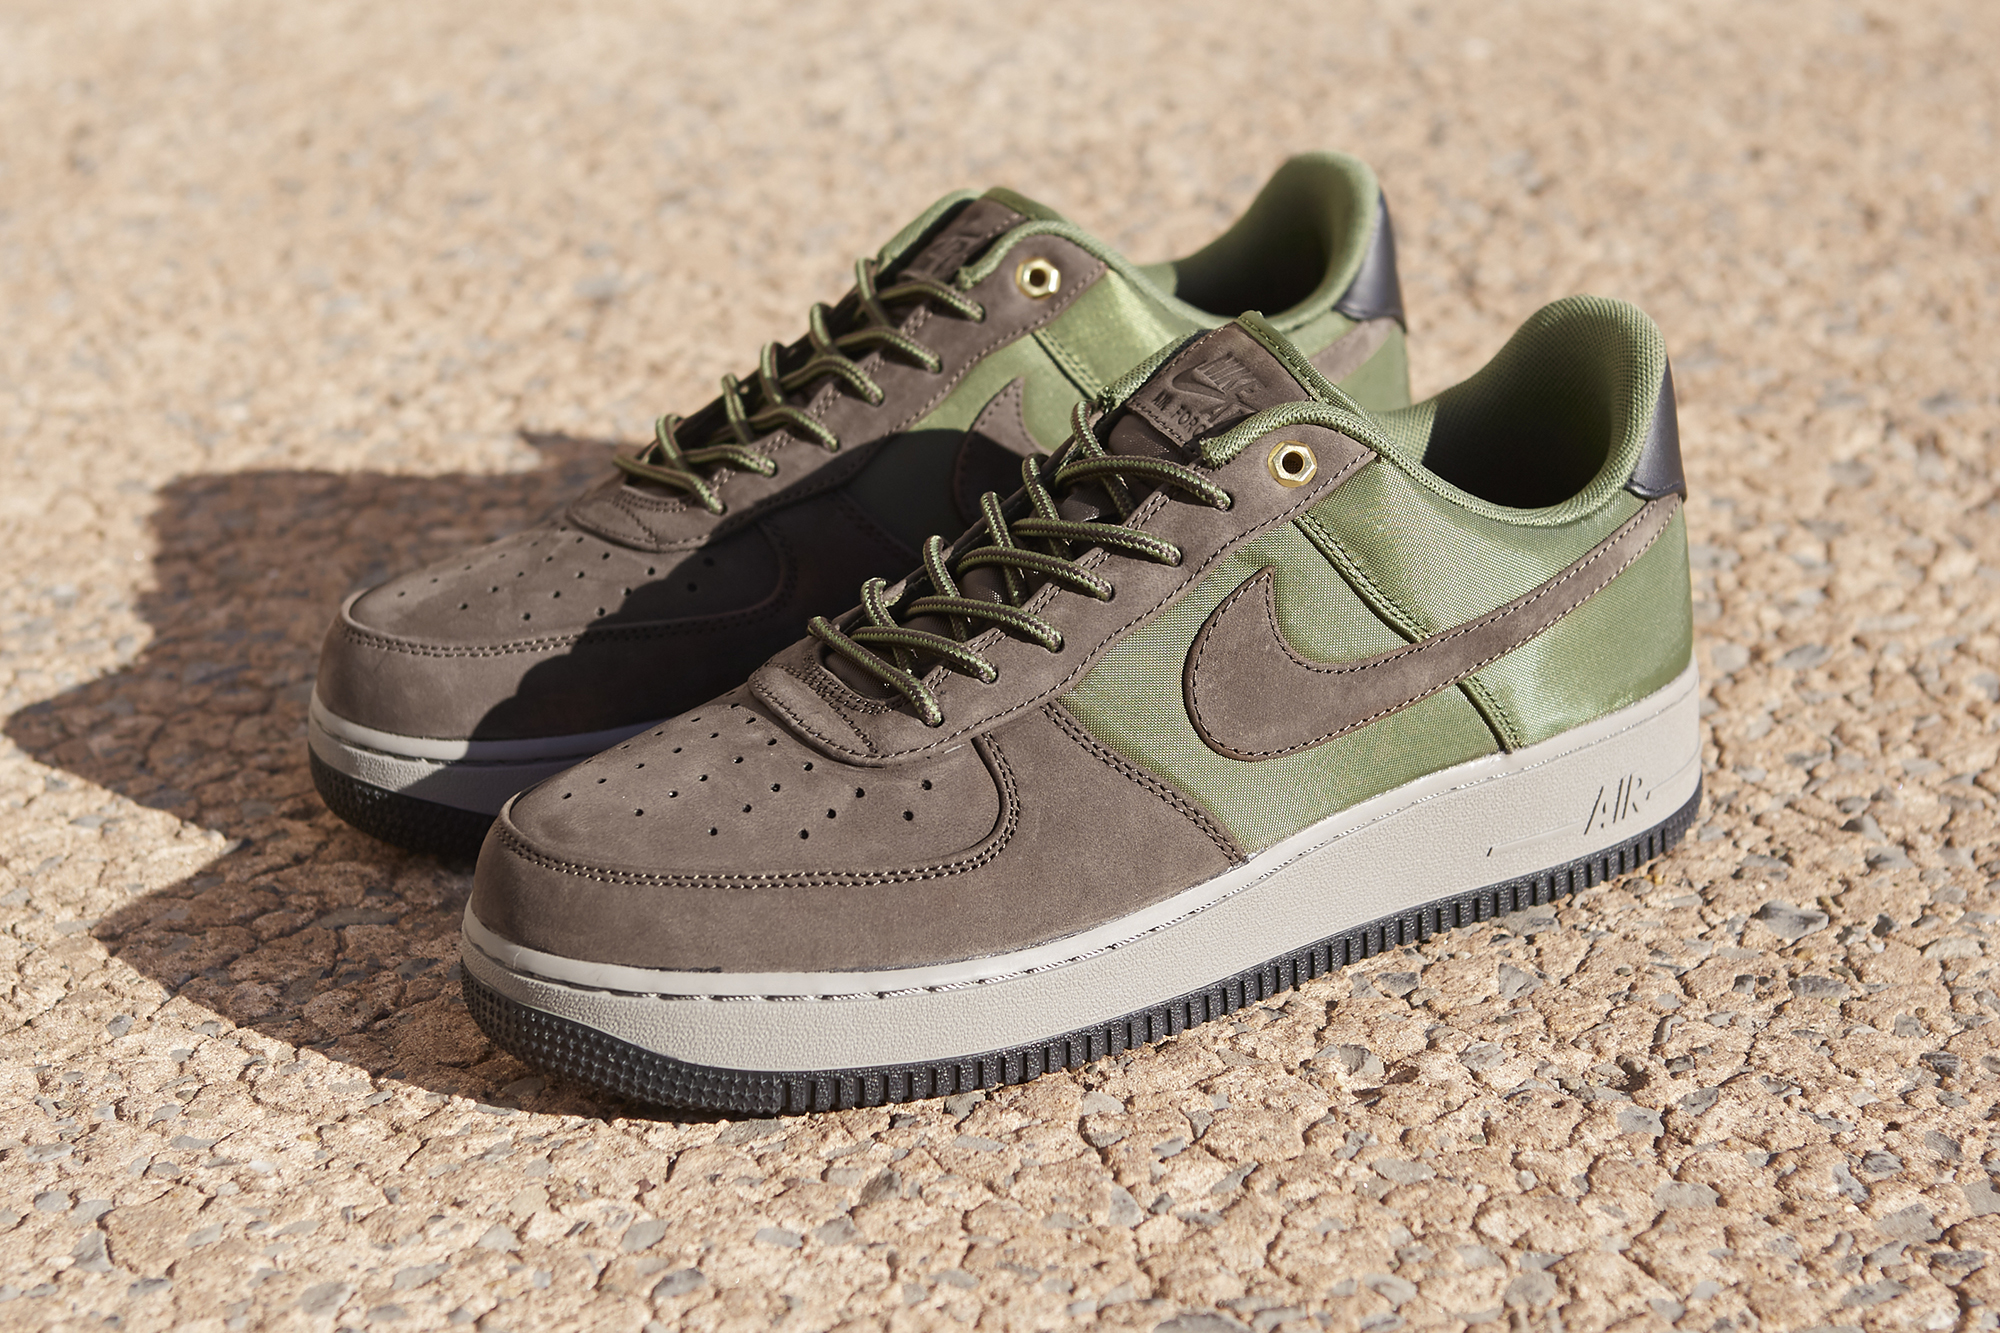 Nike Air Force 1 '07 Premium Low 'Baroque Brown' and 'Army Olive'